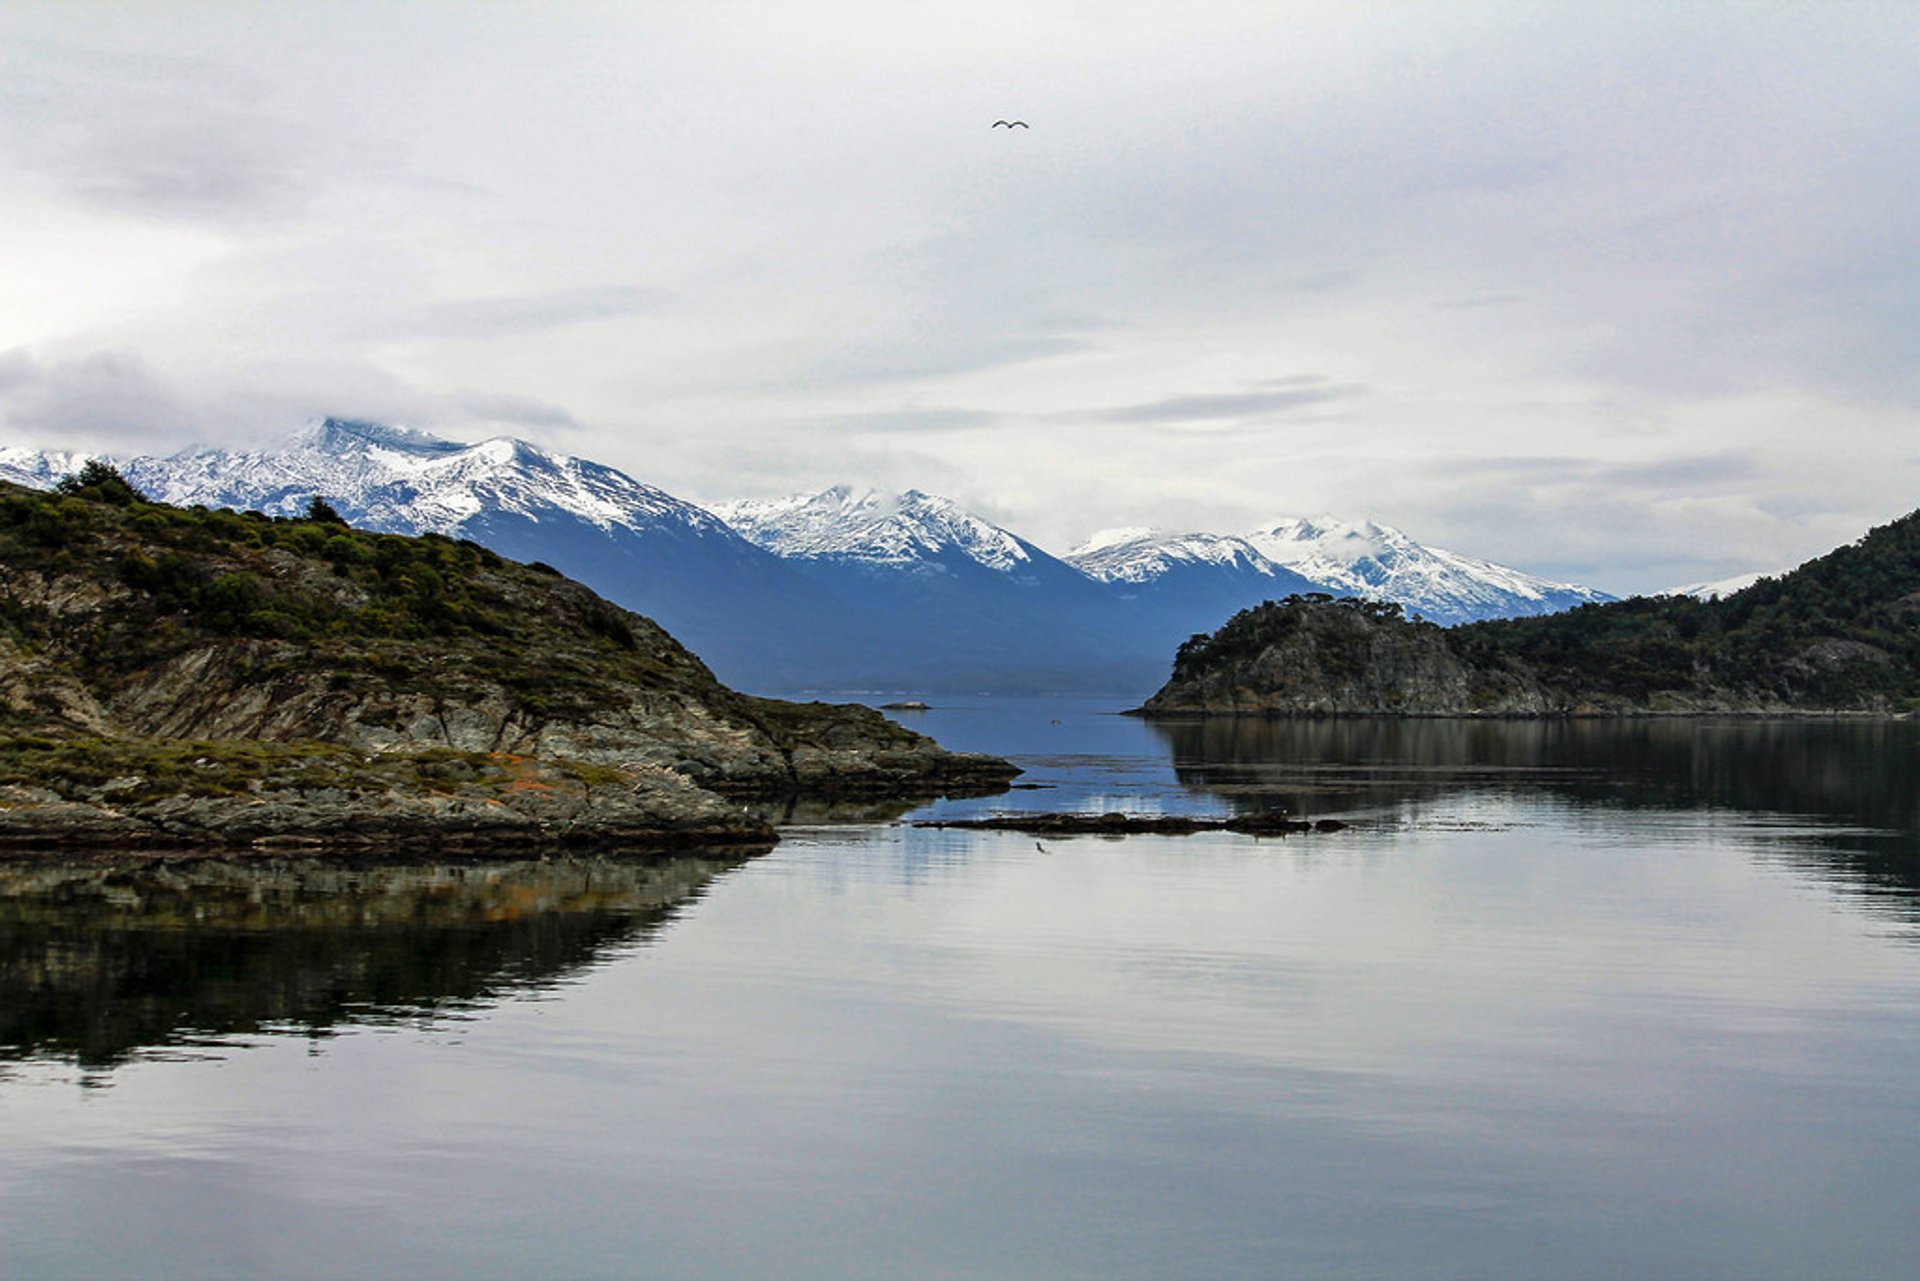 Beagle Channel in Patagonia 2020 - Best Time